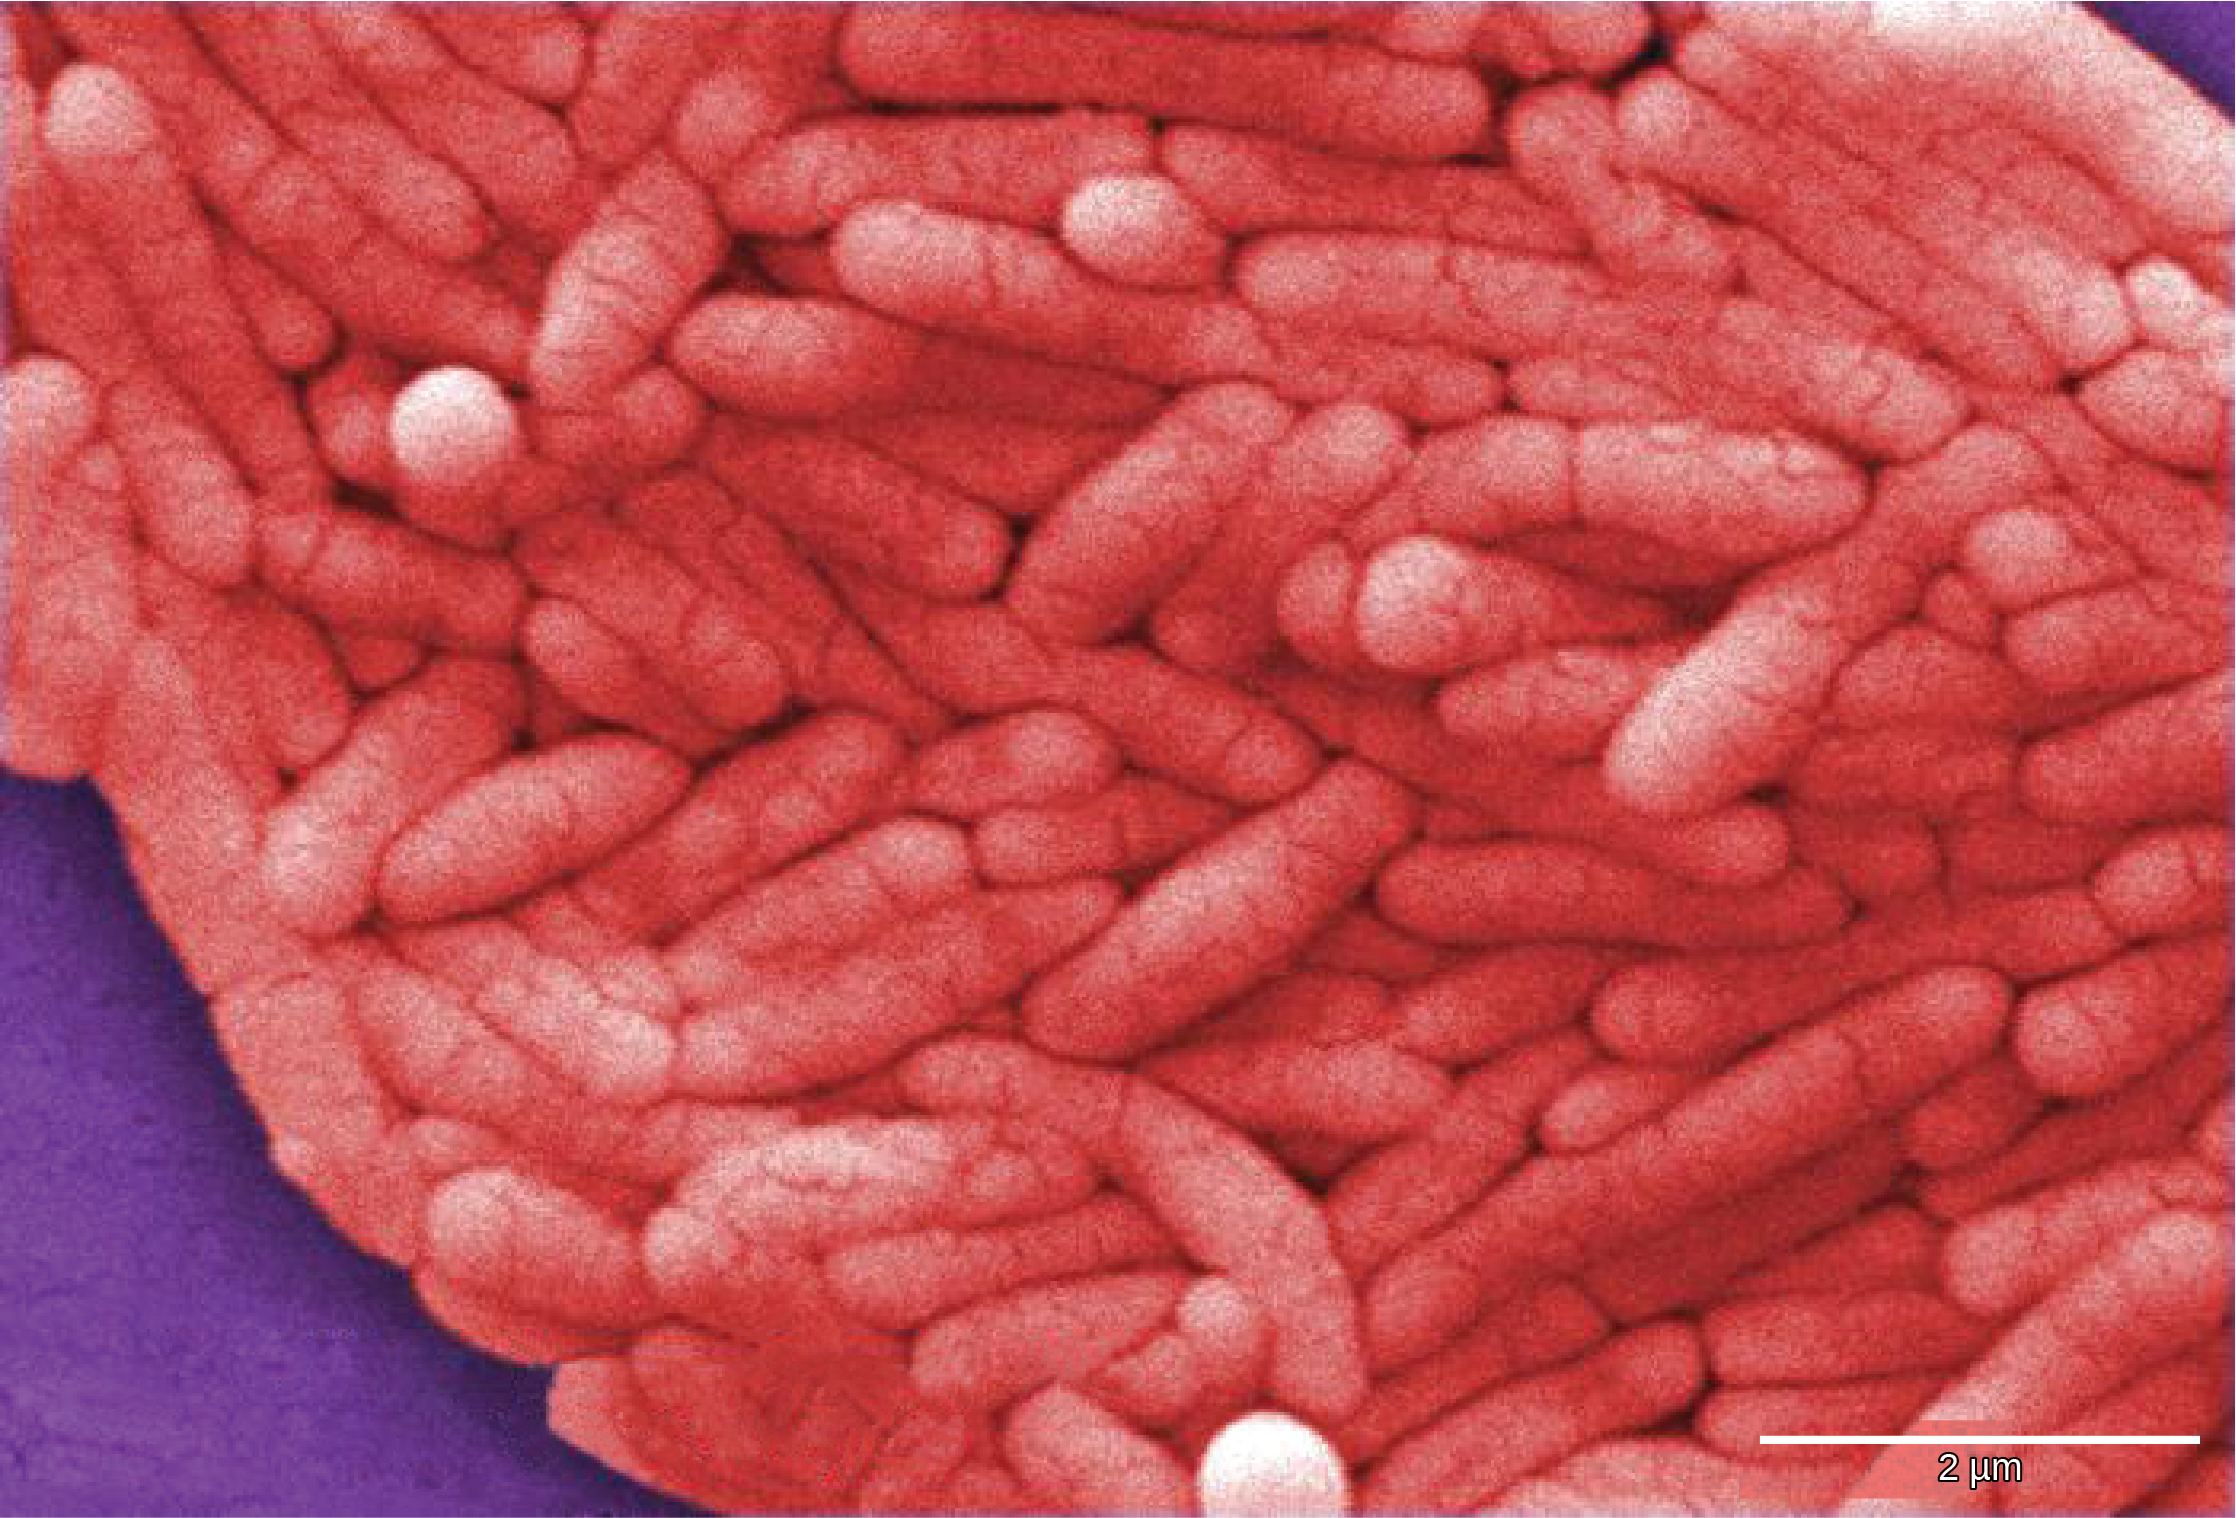 Micrograph shows pink rod-shaped bacteria.